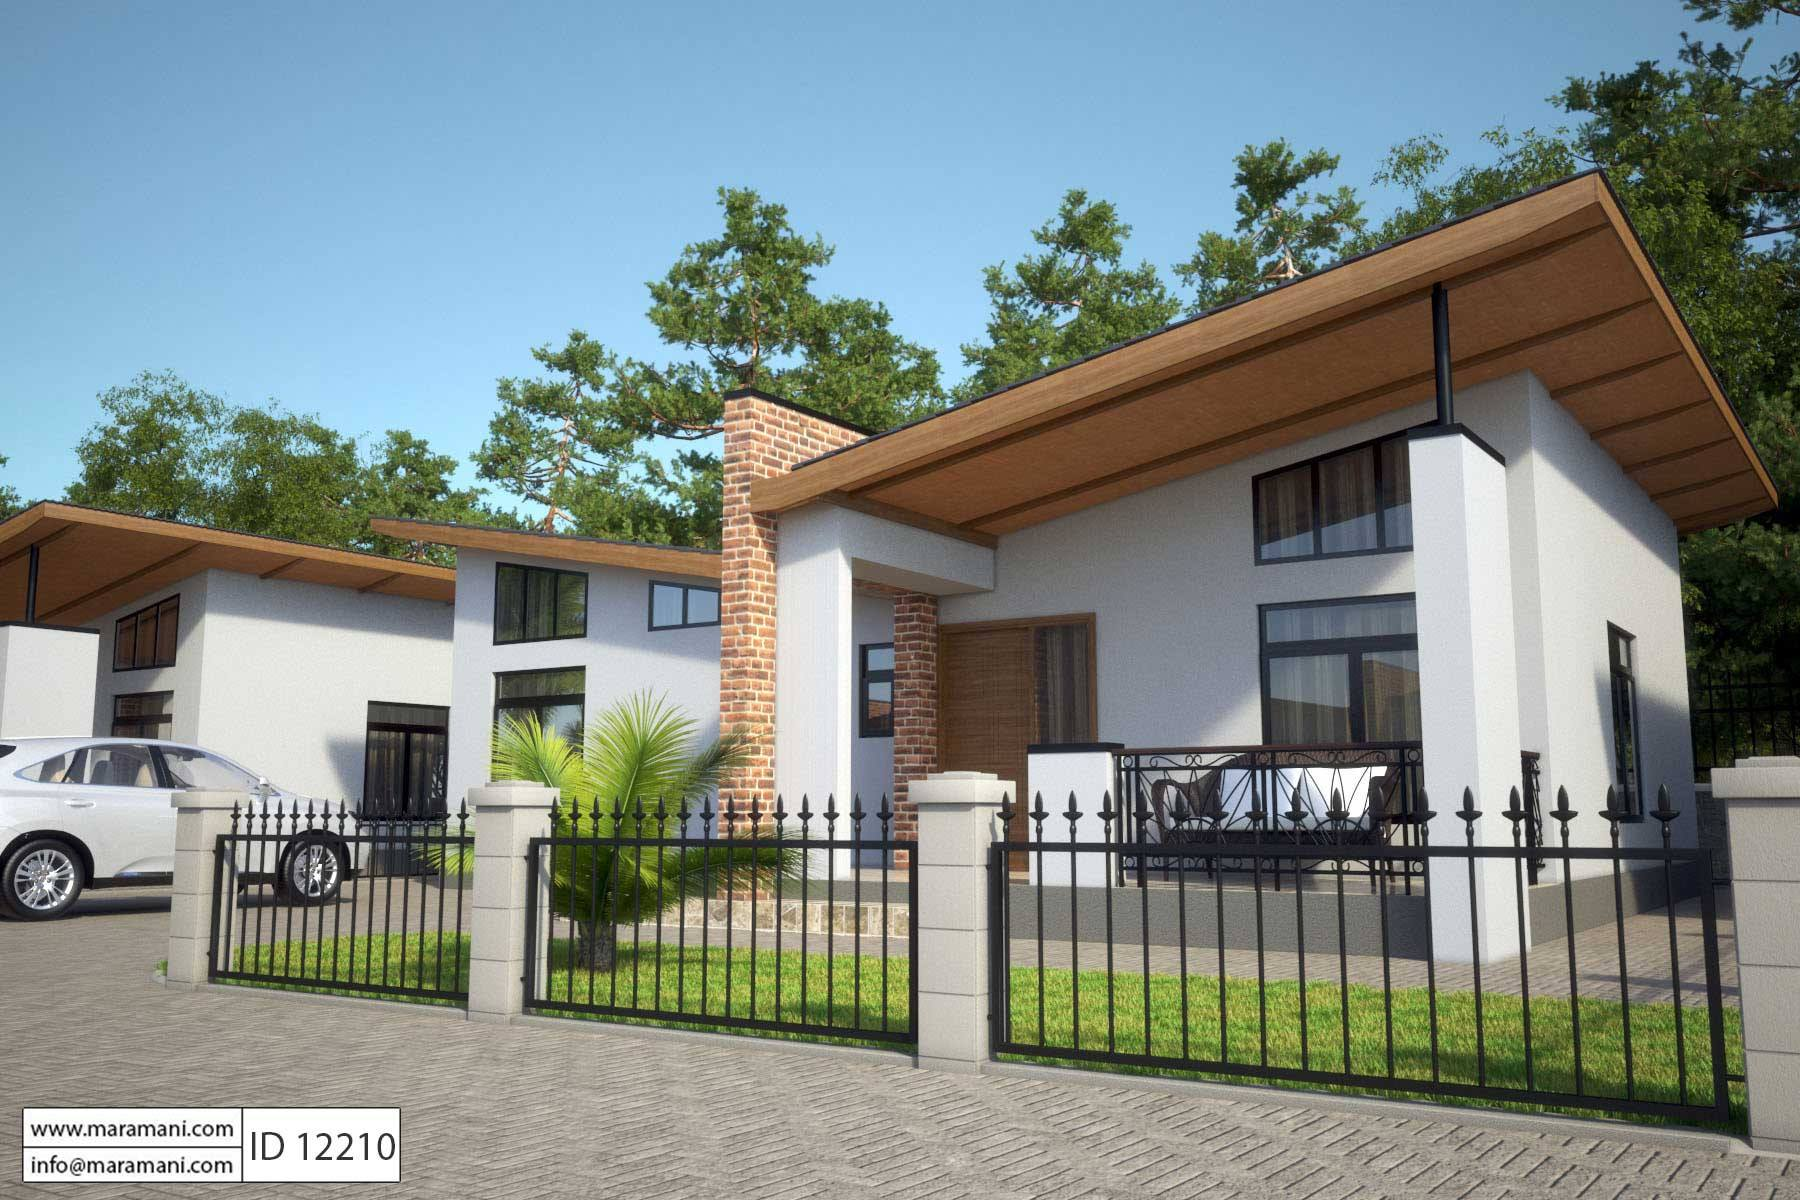 2 bedroom house plan id 12210 house designs by maramani for House olans